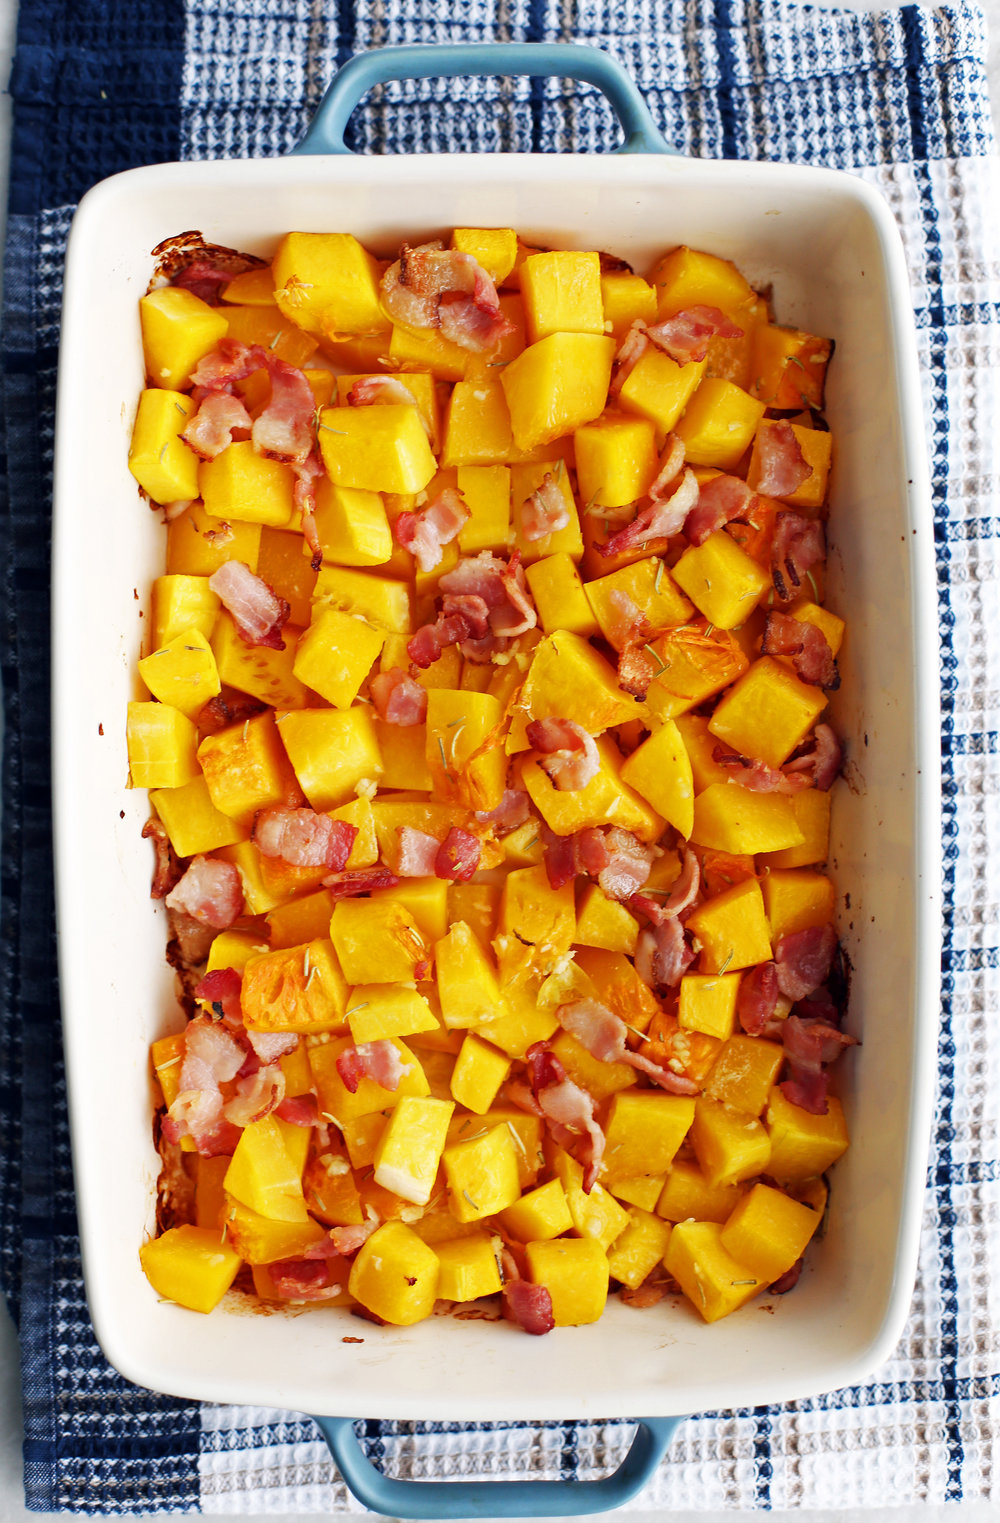 Baked butternut squash and chopped bacon in a large baking dish.